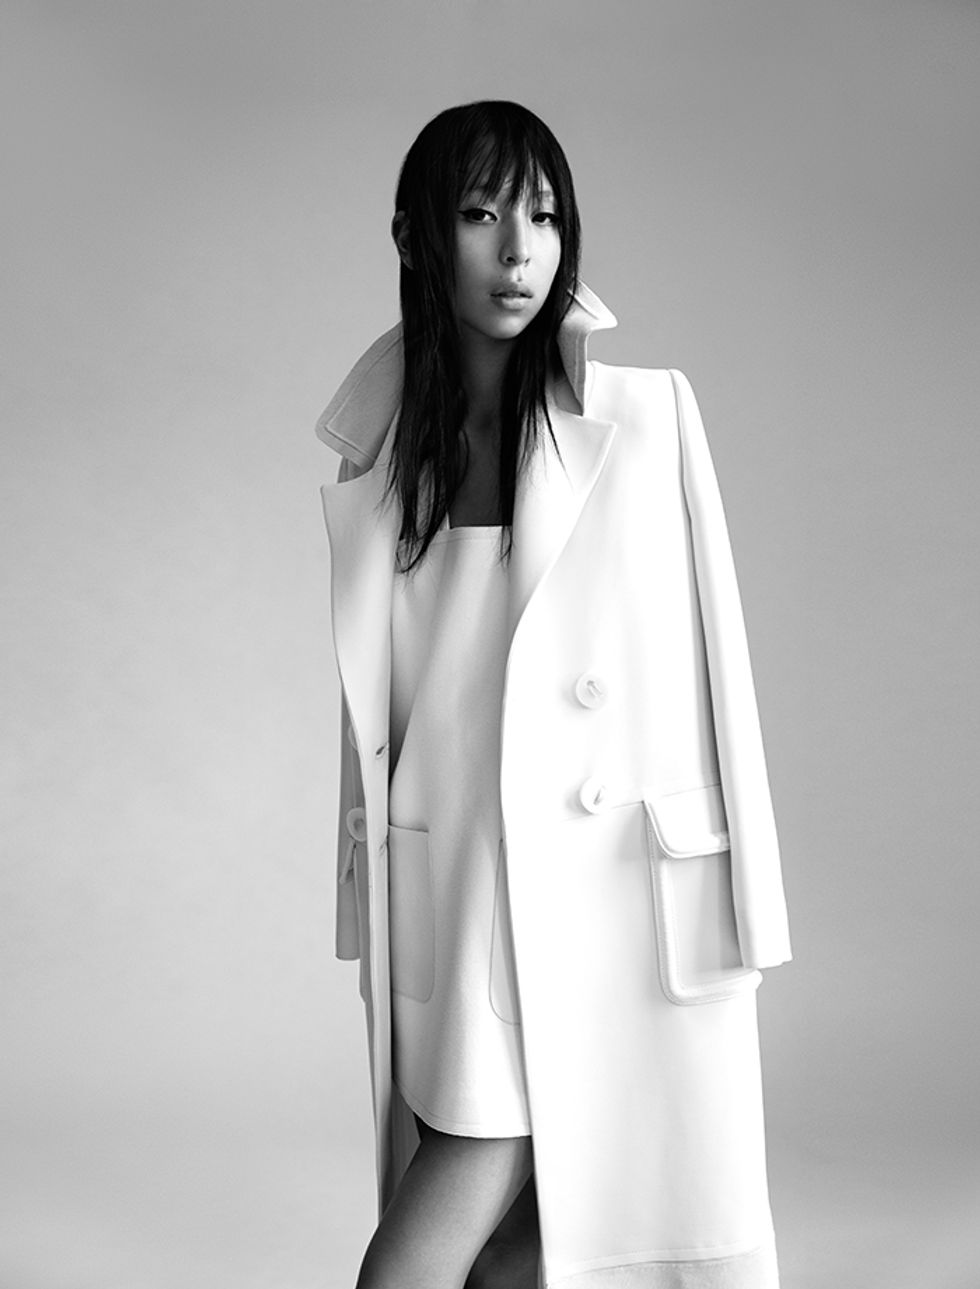 Meet Issa Lish, the Mexican-Japanese Model the Fashion World Can't Stop Talking About